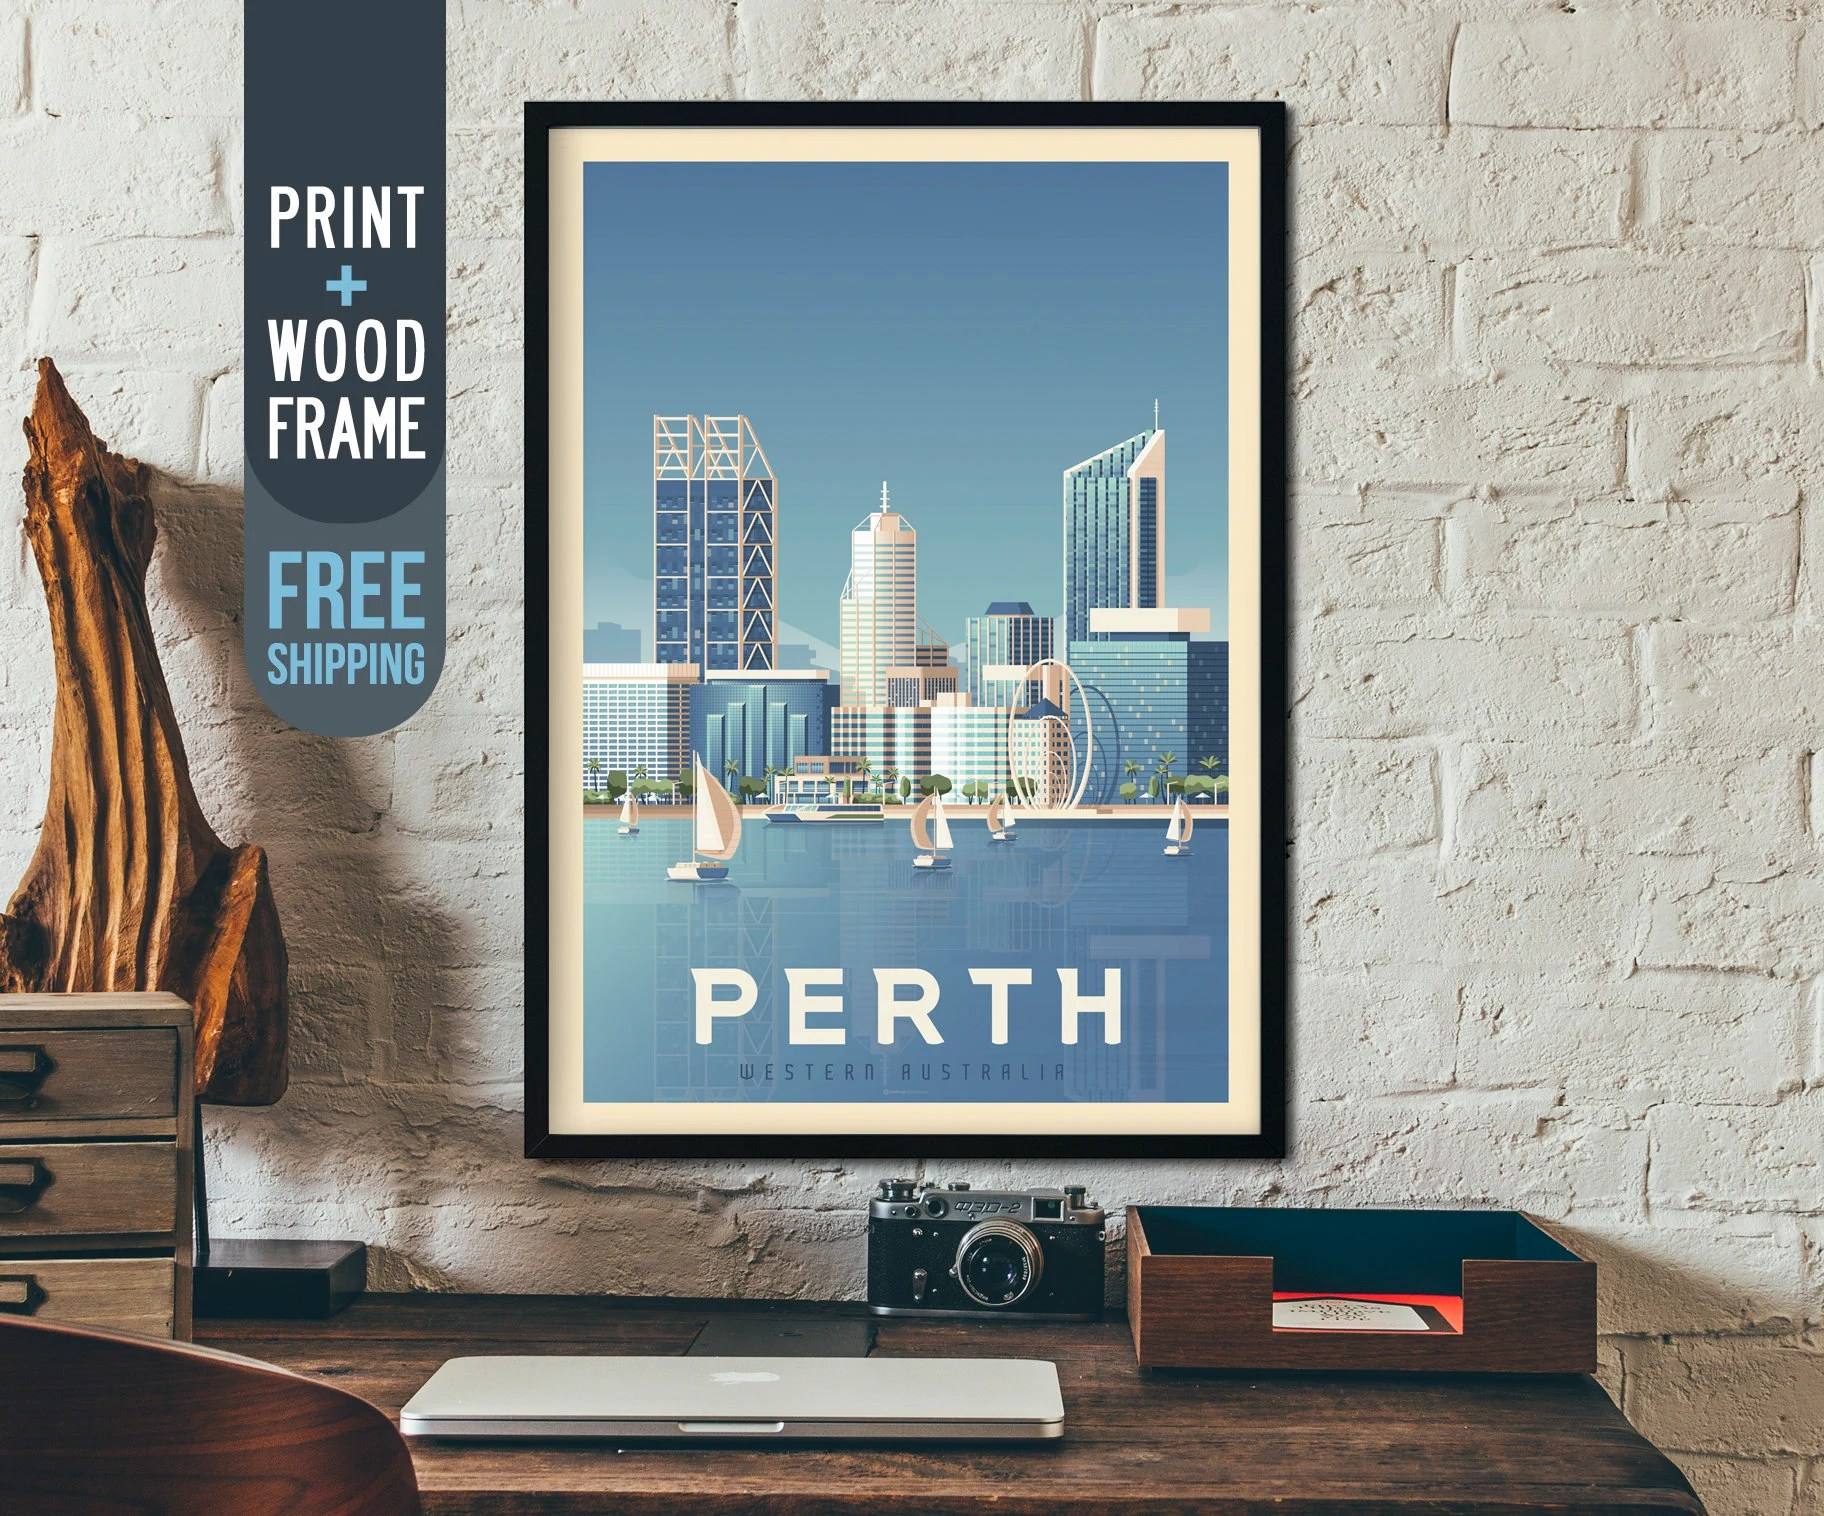 Poster Shop Perth Perth Australia Vintage Travel Poster Perth Framed Poster Perth Australia Wall Art Home Decoration Wall Decoration Gift Idea